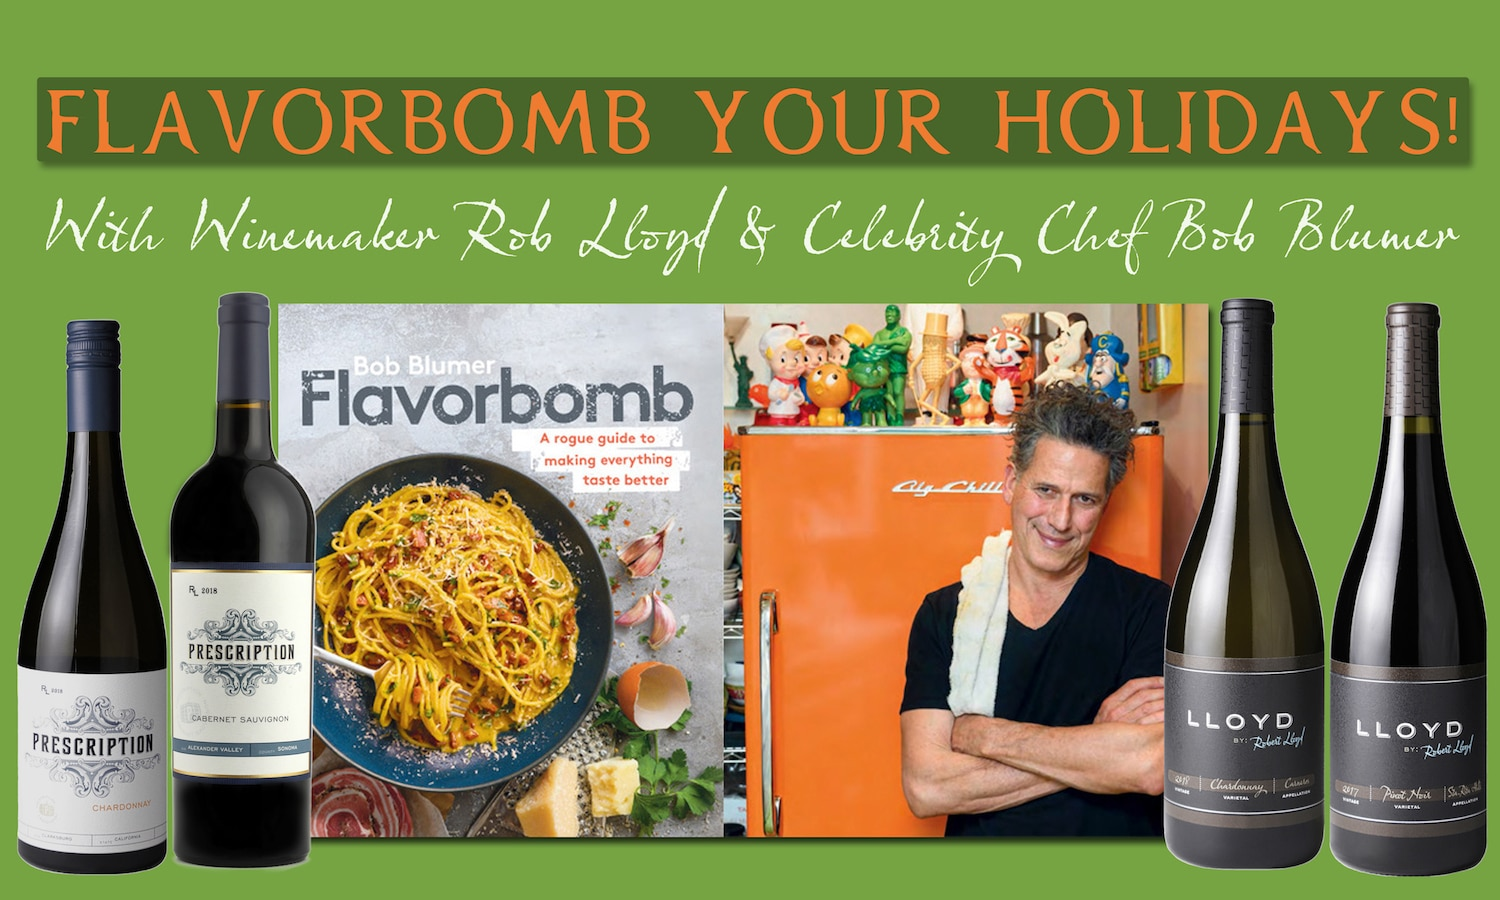 Flavorbomb Your Holidays Collection